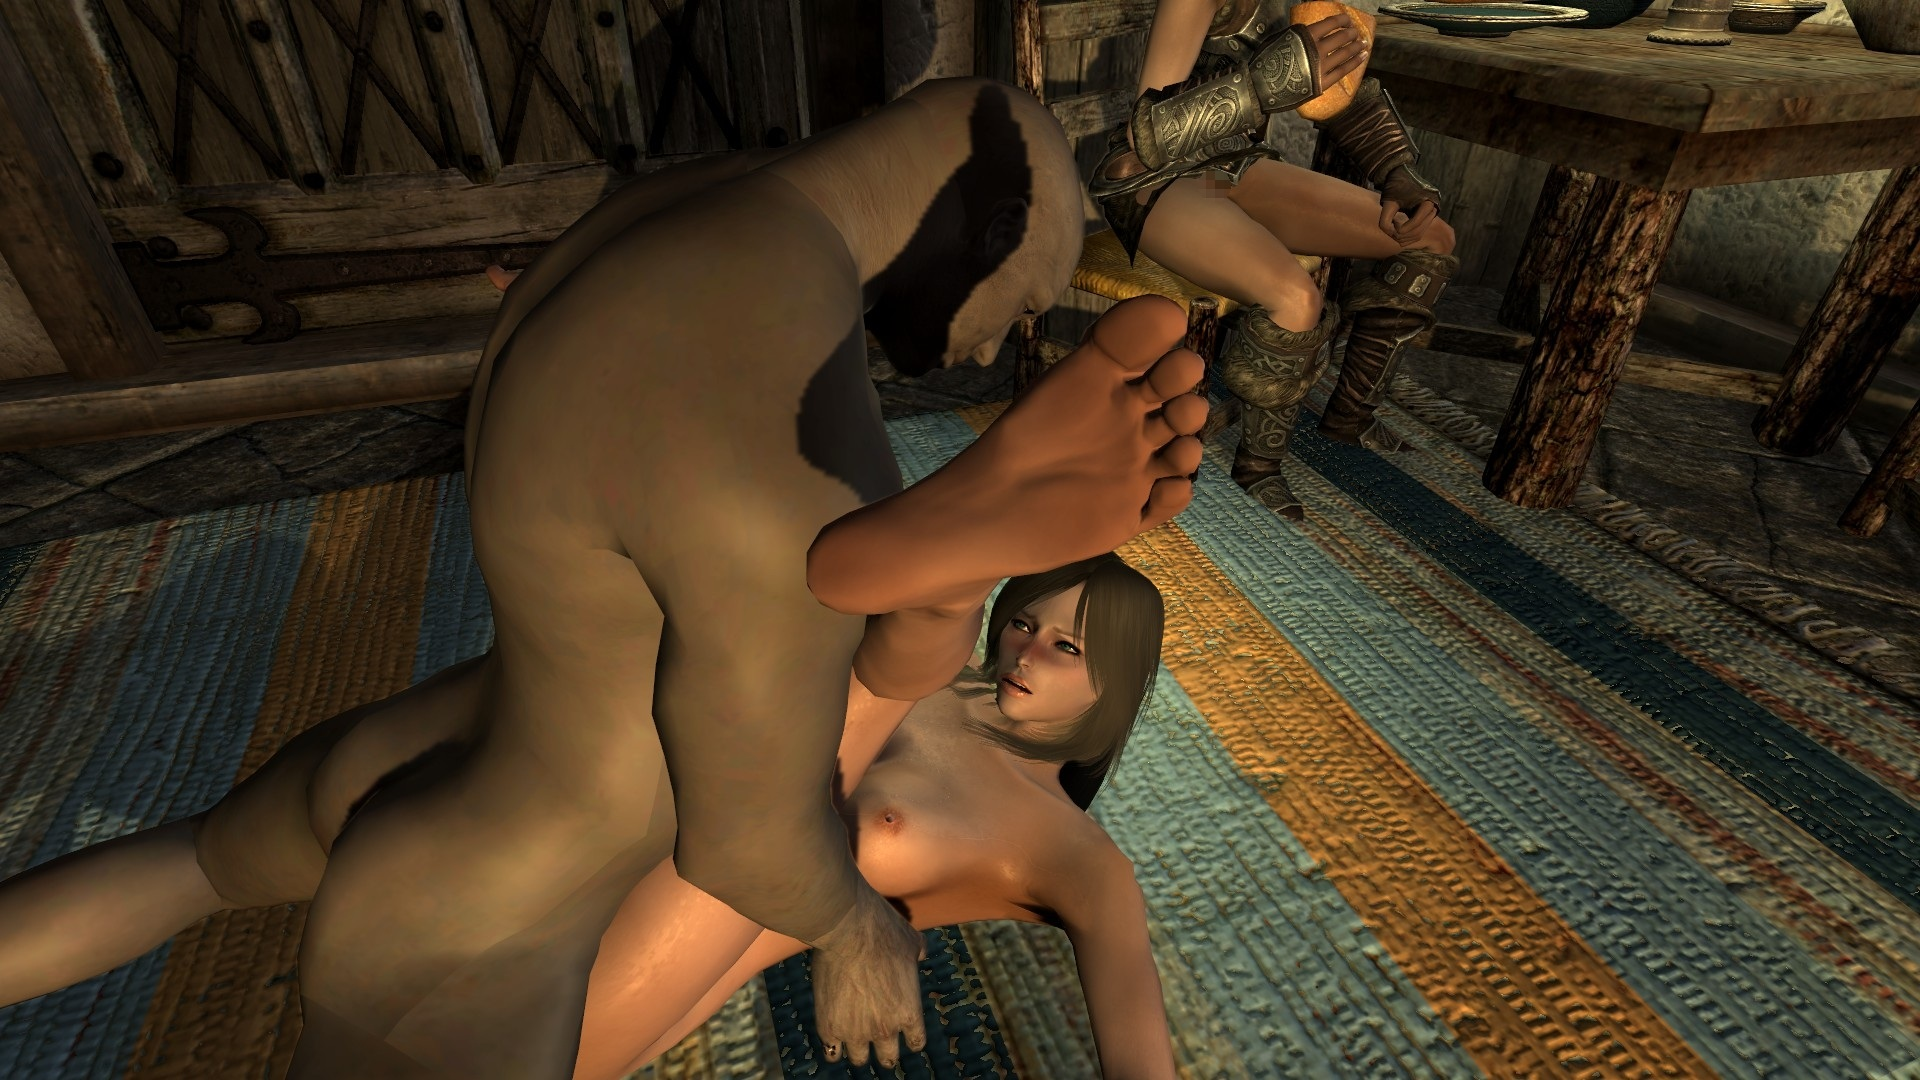 Skyrim sex nude -youtube hentai tube